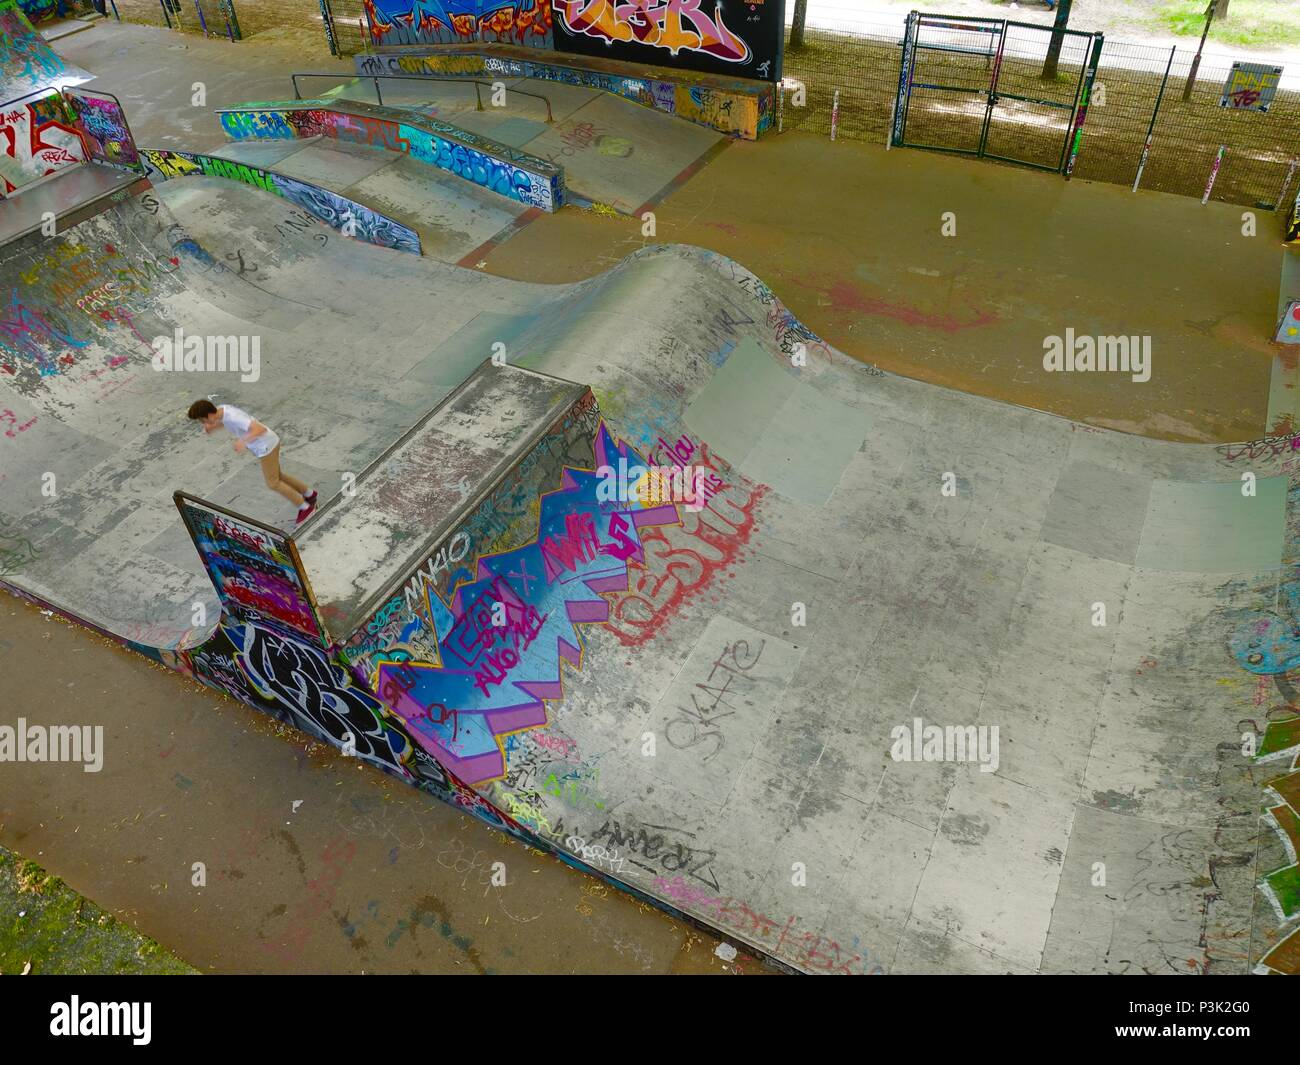 Boy in skatepark decorated with grafitti at Bercy Park, Paris, France Stock Photo